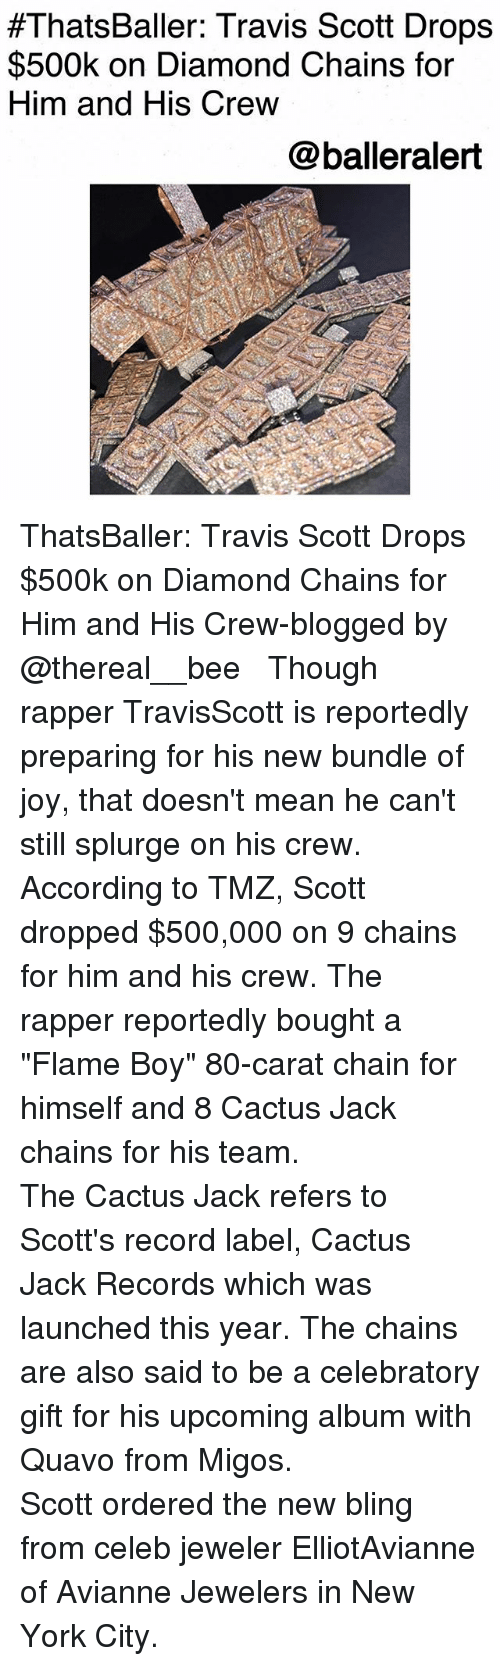 """Bling, Memes, and Migos:  #ThatsBaller: Travis Scott Drops  $500k on Diamond Chains for  Him and His Crew  @balleralert ThatsBaller: Travis Scott Drops $500k on Diamond Chains for Him and His Crew-blogged by @thereal__bee ⠀⠀⠀⠀⠀⠀⠀⠀⠀ ⠀⠀ Though rapper TravisScott is reportedly preparing for his new bundle of joy, that doesn't mean he can't still splurge on his crew. ⠀⠀⠀⠀⠀⠀⠀⠀⠀ ⠀⠀ According to TMZ, Scott dropped $500,000 on 9 chains for him and his crew. The rapper reportedly bought a """"Flame Boy"""" 80-carat chain for himself and 8 Cactus Jack chains for his team. ⠀⠀⠀⠀⠀⠀⠀⠀⠀ ⠀⠀ The Cactus Jack refers to Scott's record label, Cactus Jack Records which was launched this year. The chains are also said to be a celebratory gift for his upcoming album with Quavo from Migos. ⠀⠀⠀⠀⠀⠀⠀⠀⠀ ⠀⠀ Scott ordered the new bling from celeb jeweler ElliotAvianne of Avianne Jewelers in New York City."""